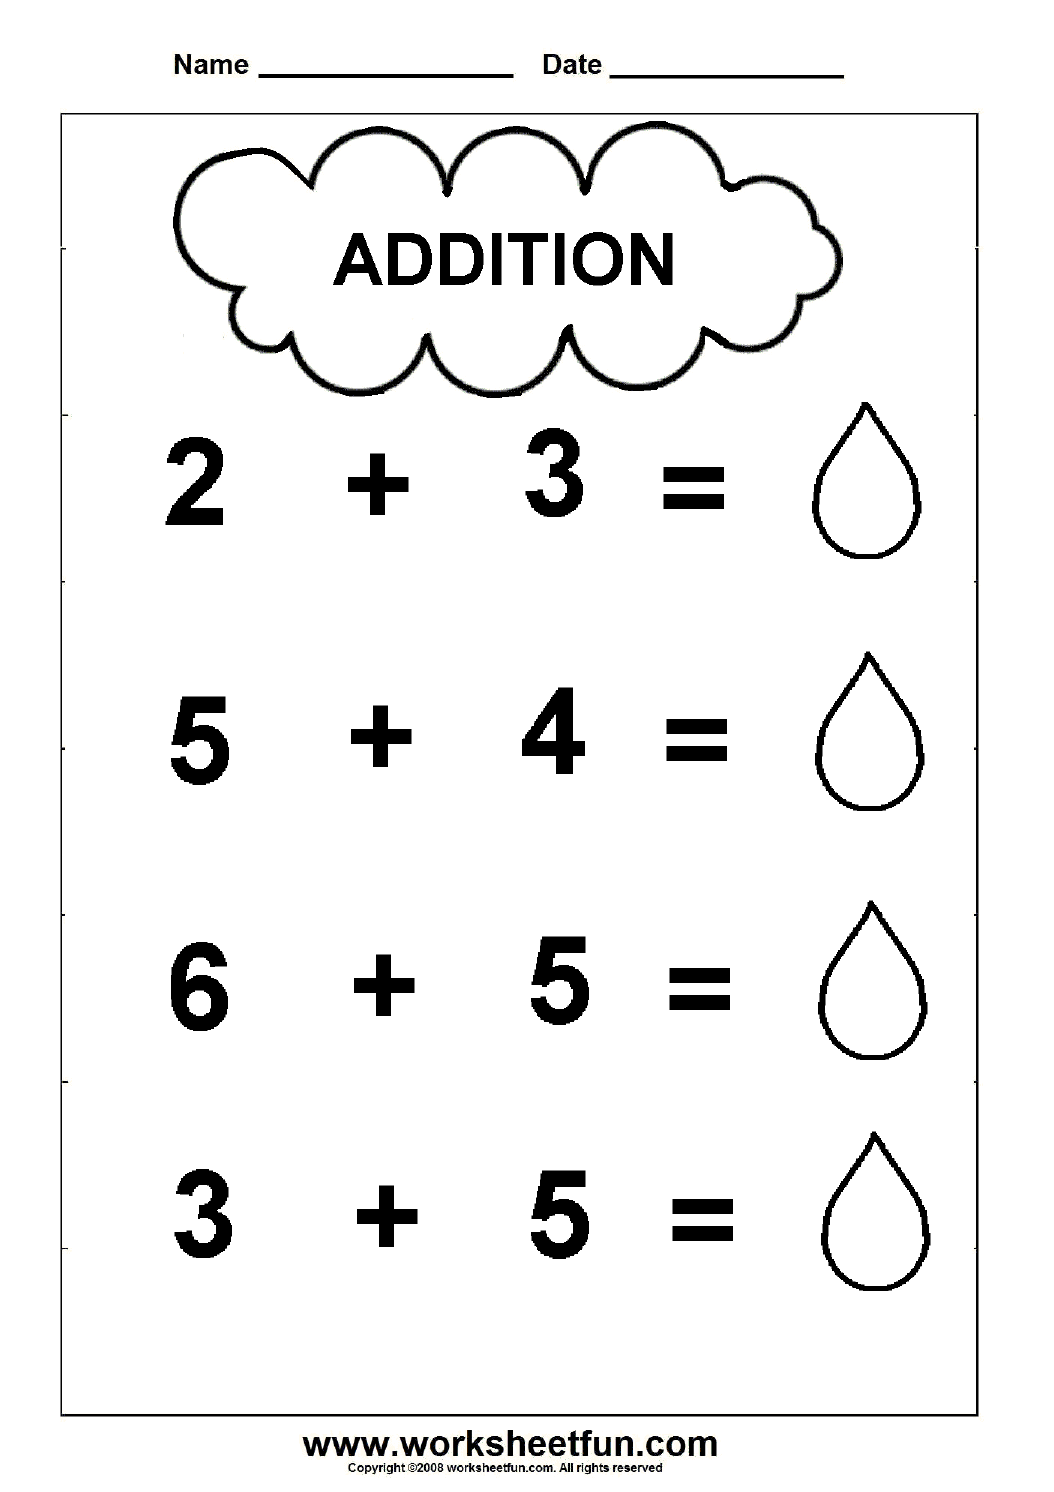 Beginner Addition 2 Kindergarten Addition Worksheets Free Printable Worksheets Worksheetfun